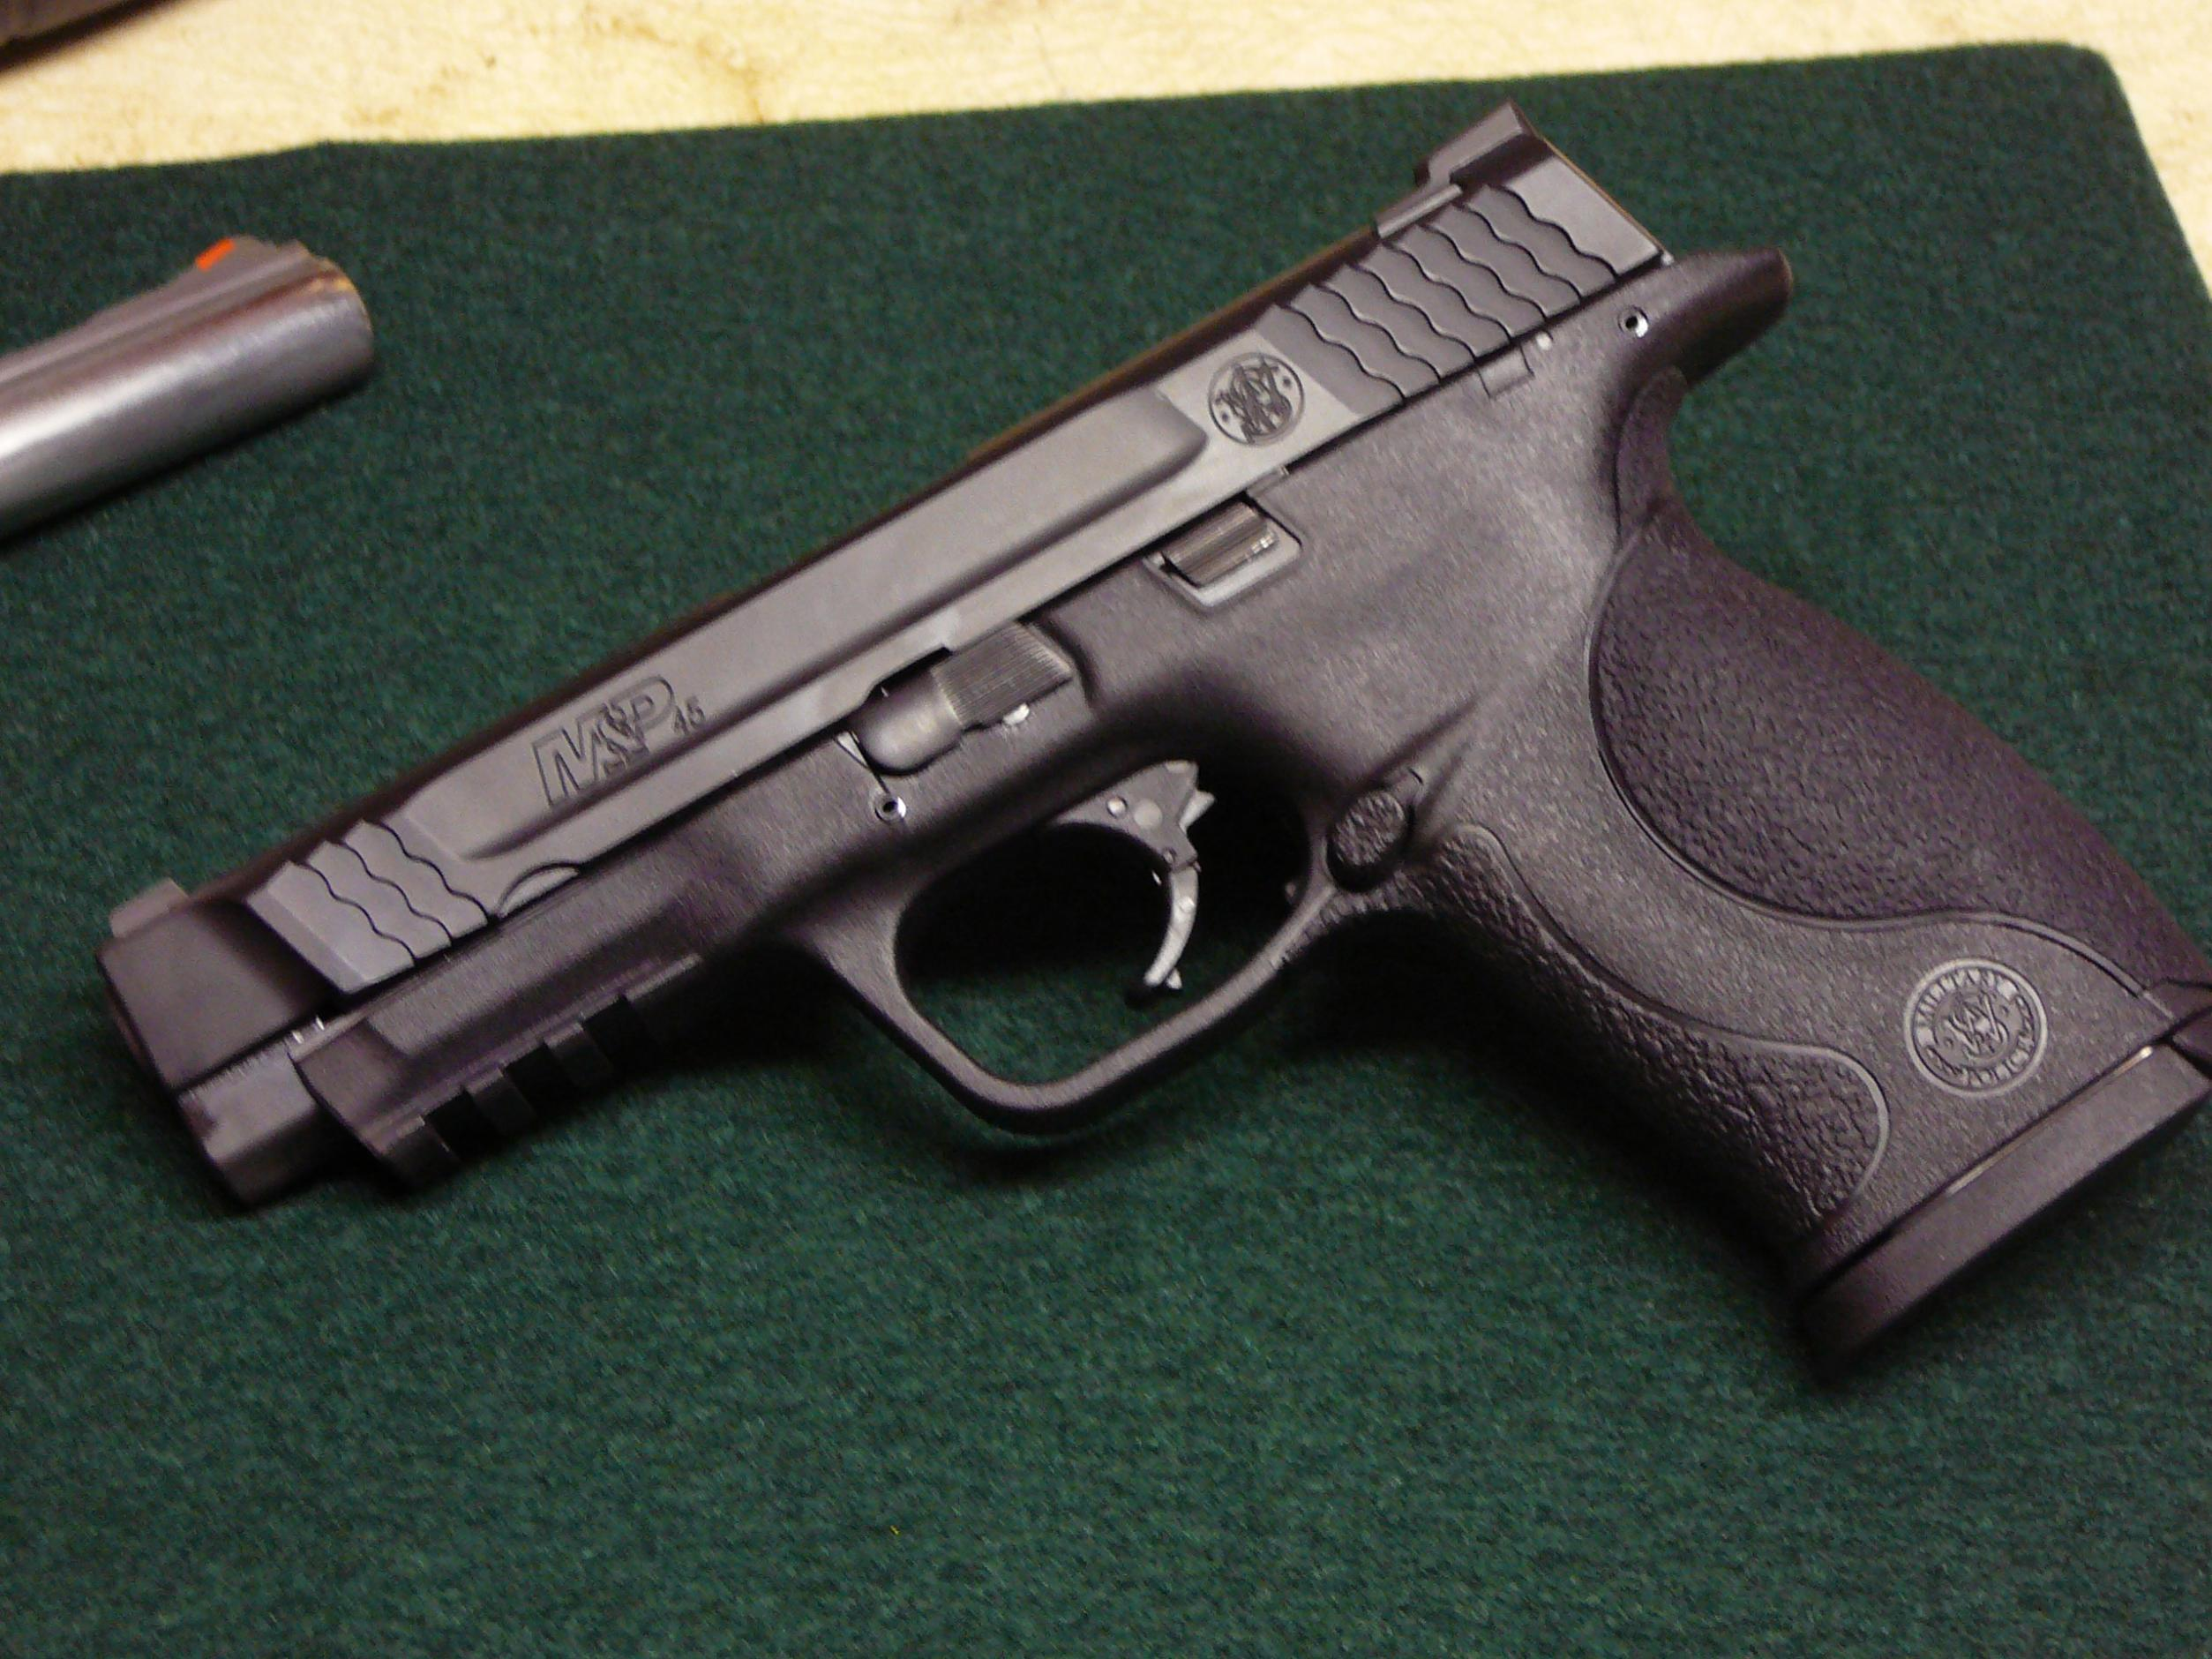 Range Report of First 200 Rounds with the M&P45!-p1020149.jpg